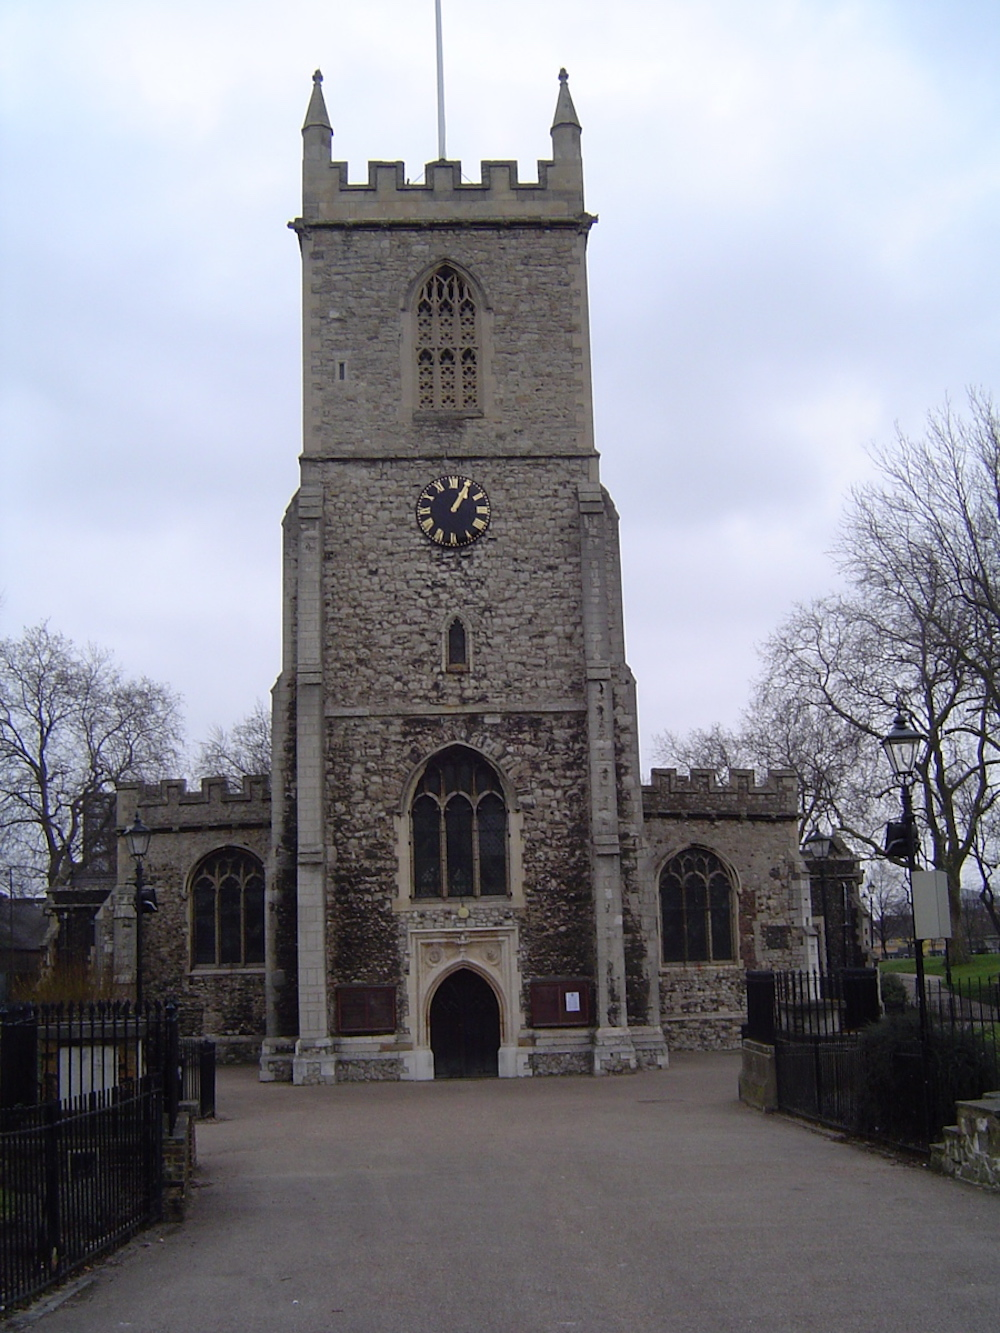 St. Dunstan's Stepney Church in London. Photo Credit: © Gordon Joly via Wikimedia Commons.